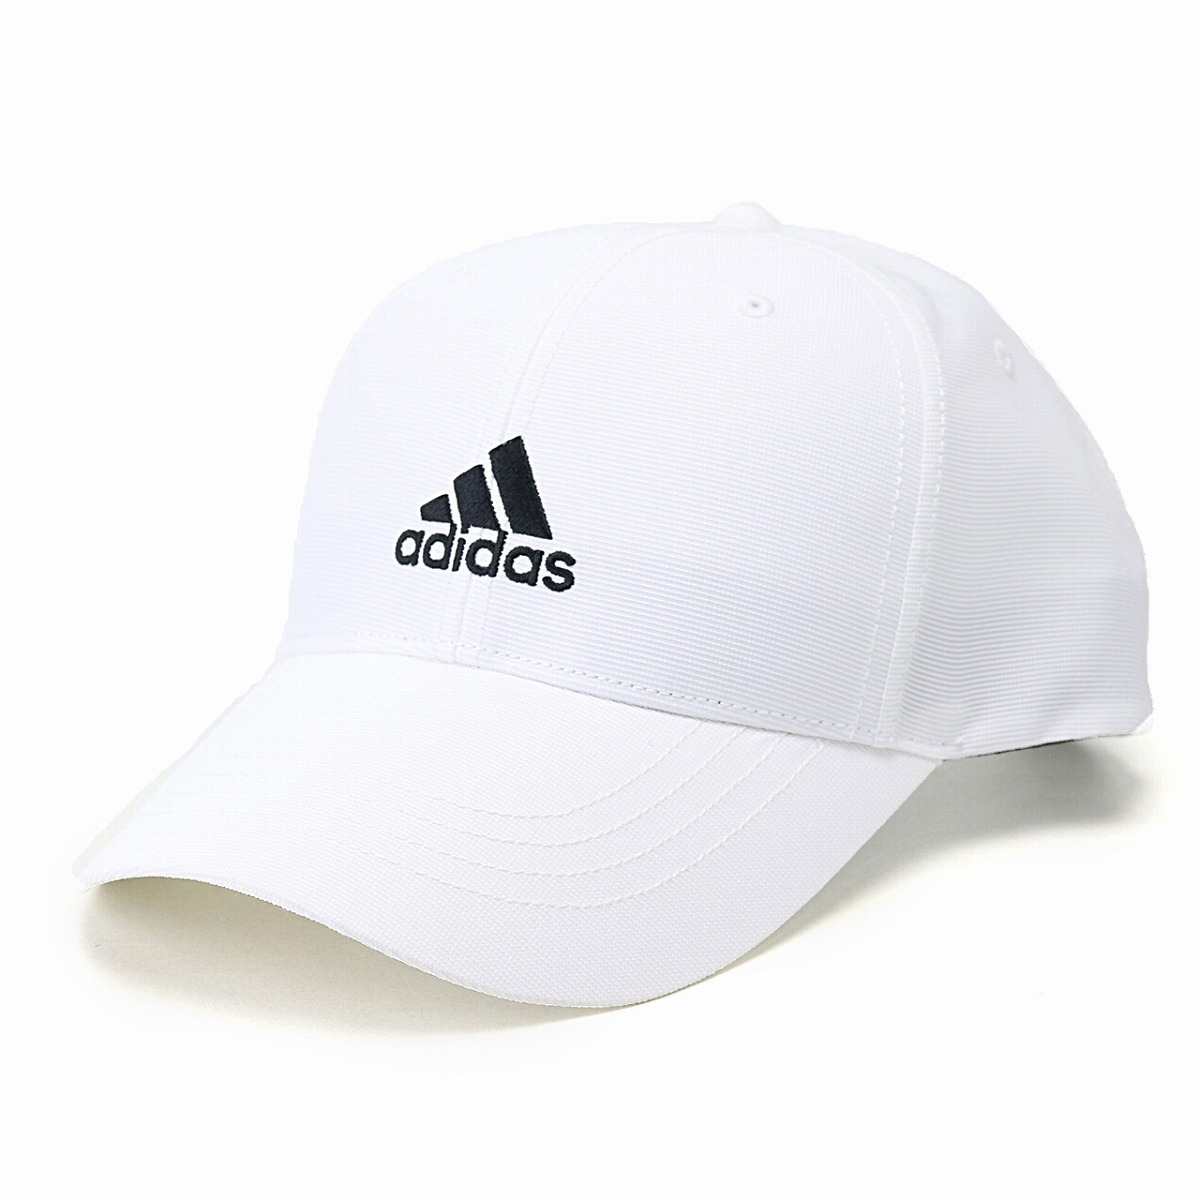 ELEHELM HAT STORE  It is a gift present in the adidas hat men cap ... 6883091fae7